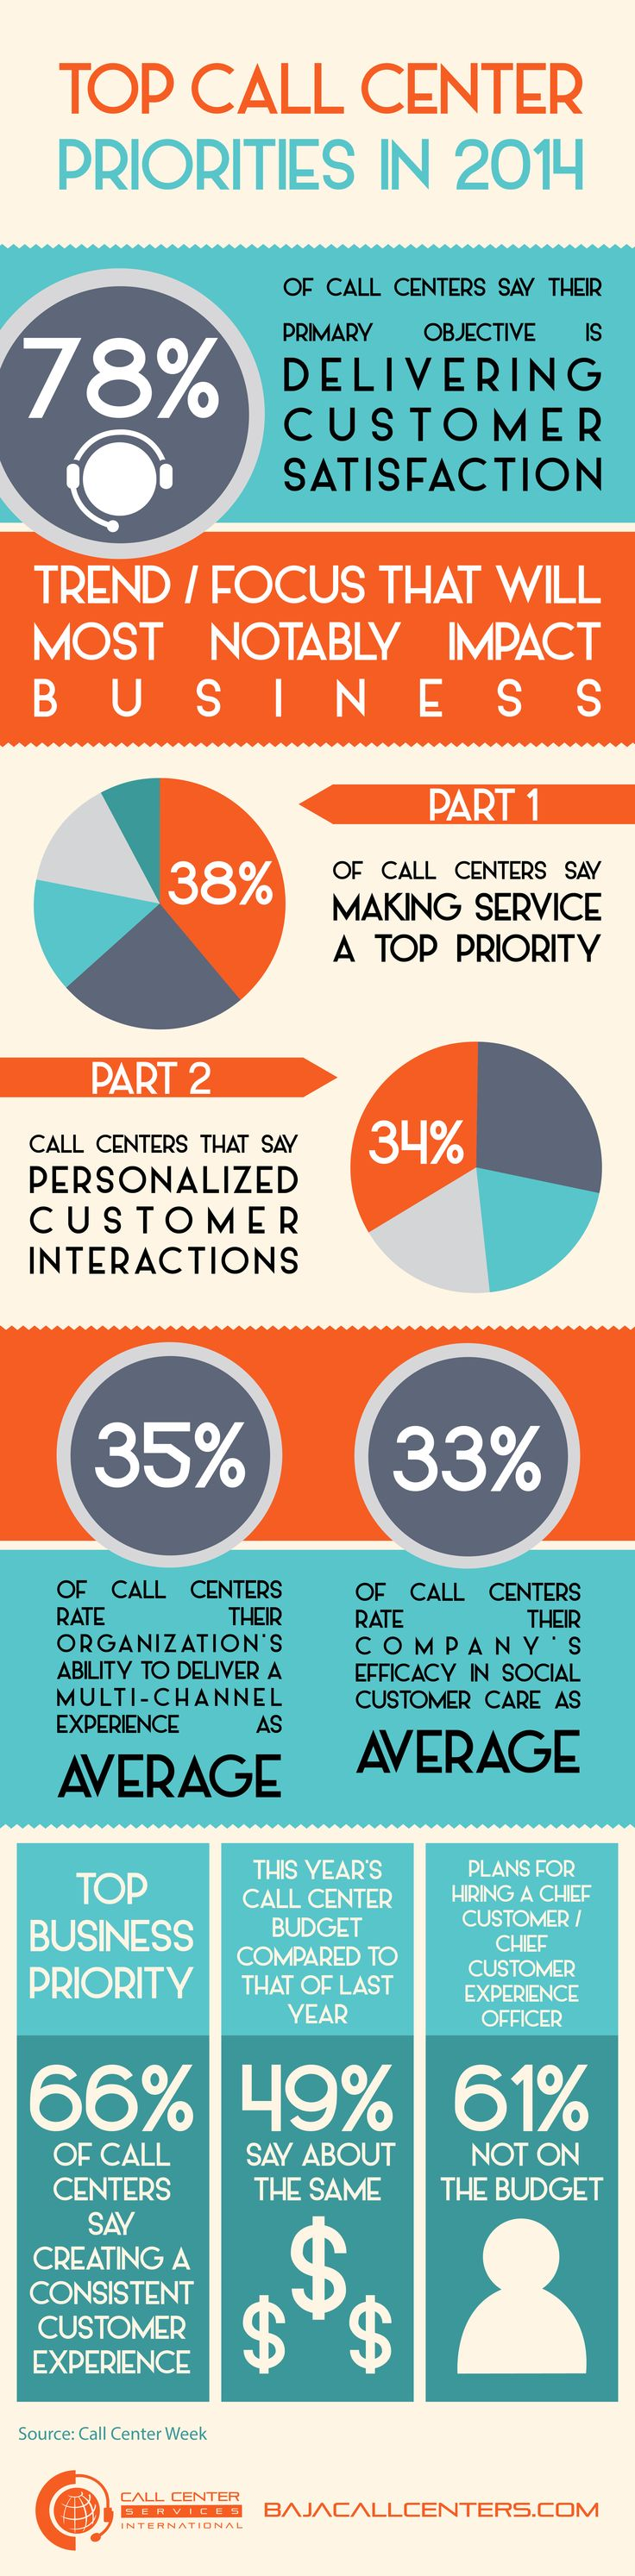 best images about customer service the social top call center priorities in 2014 infographic